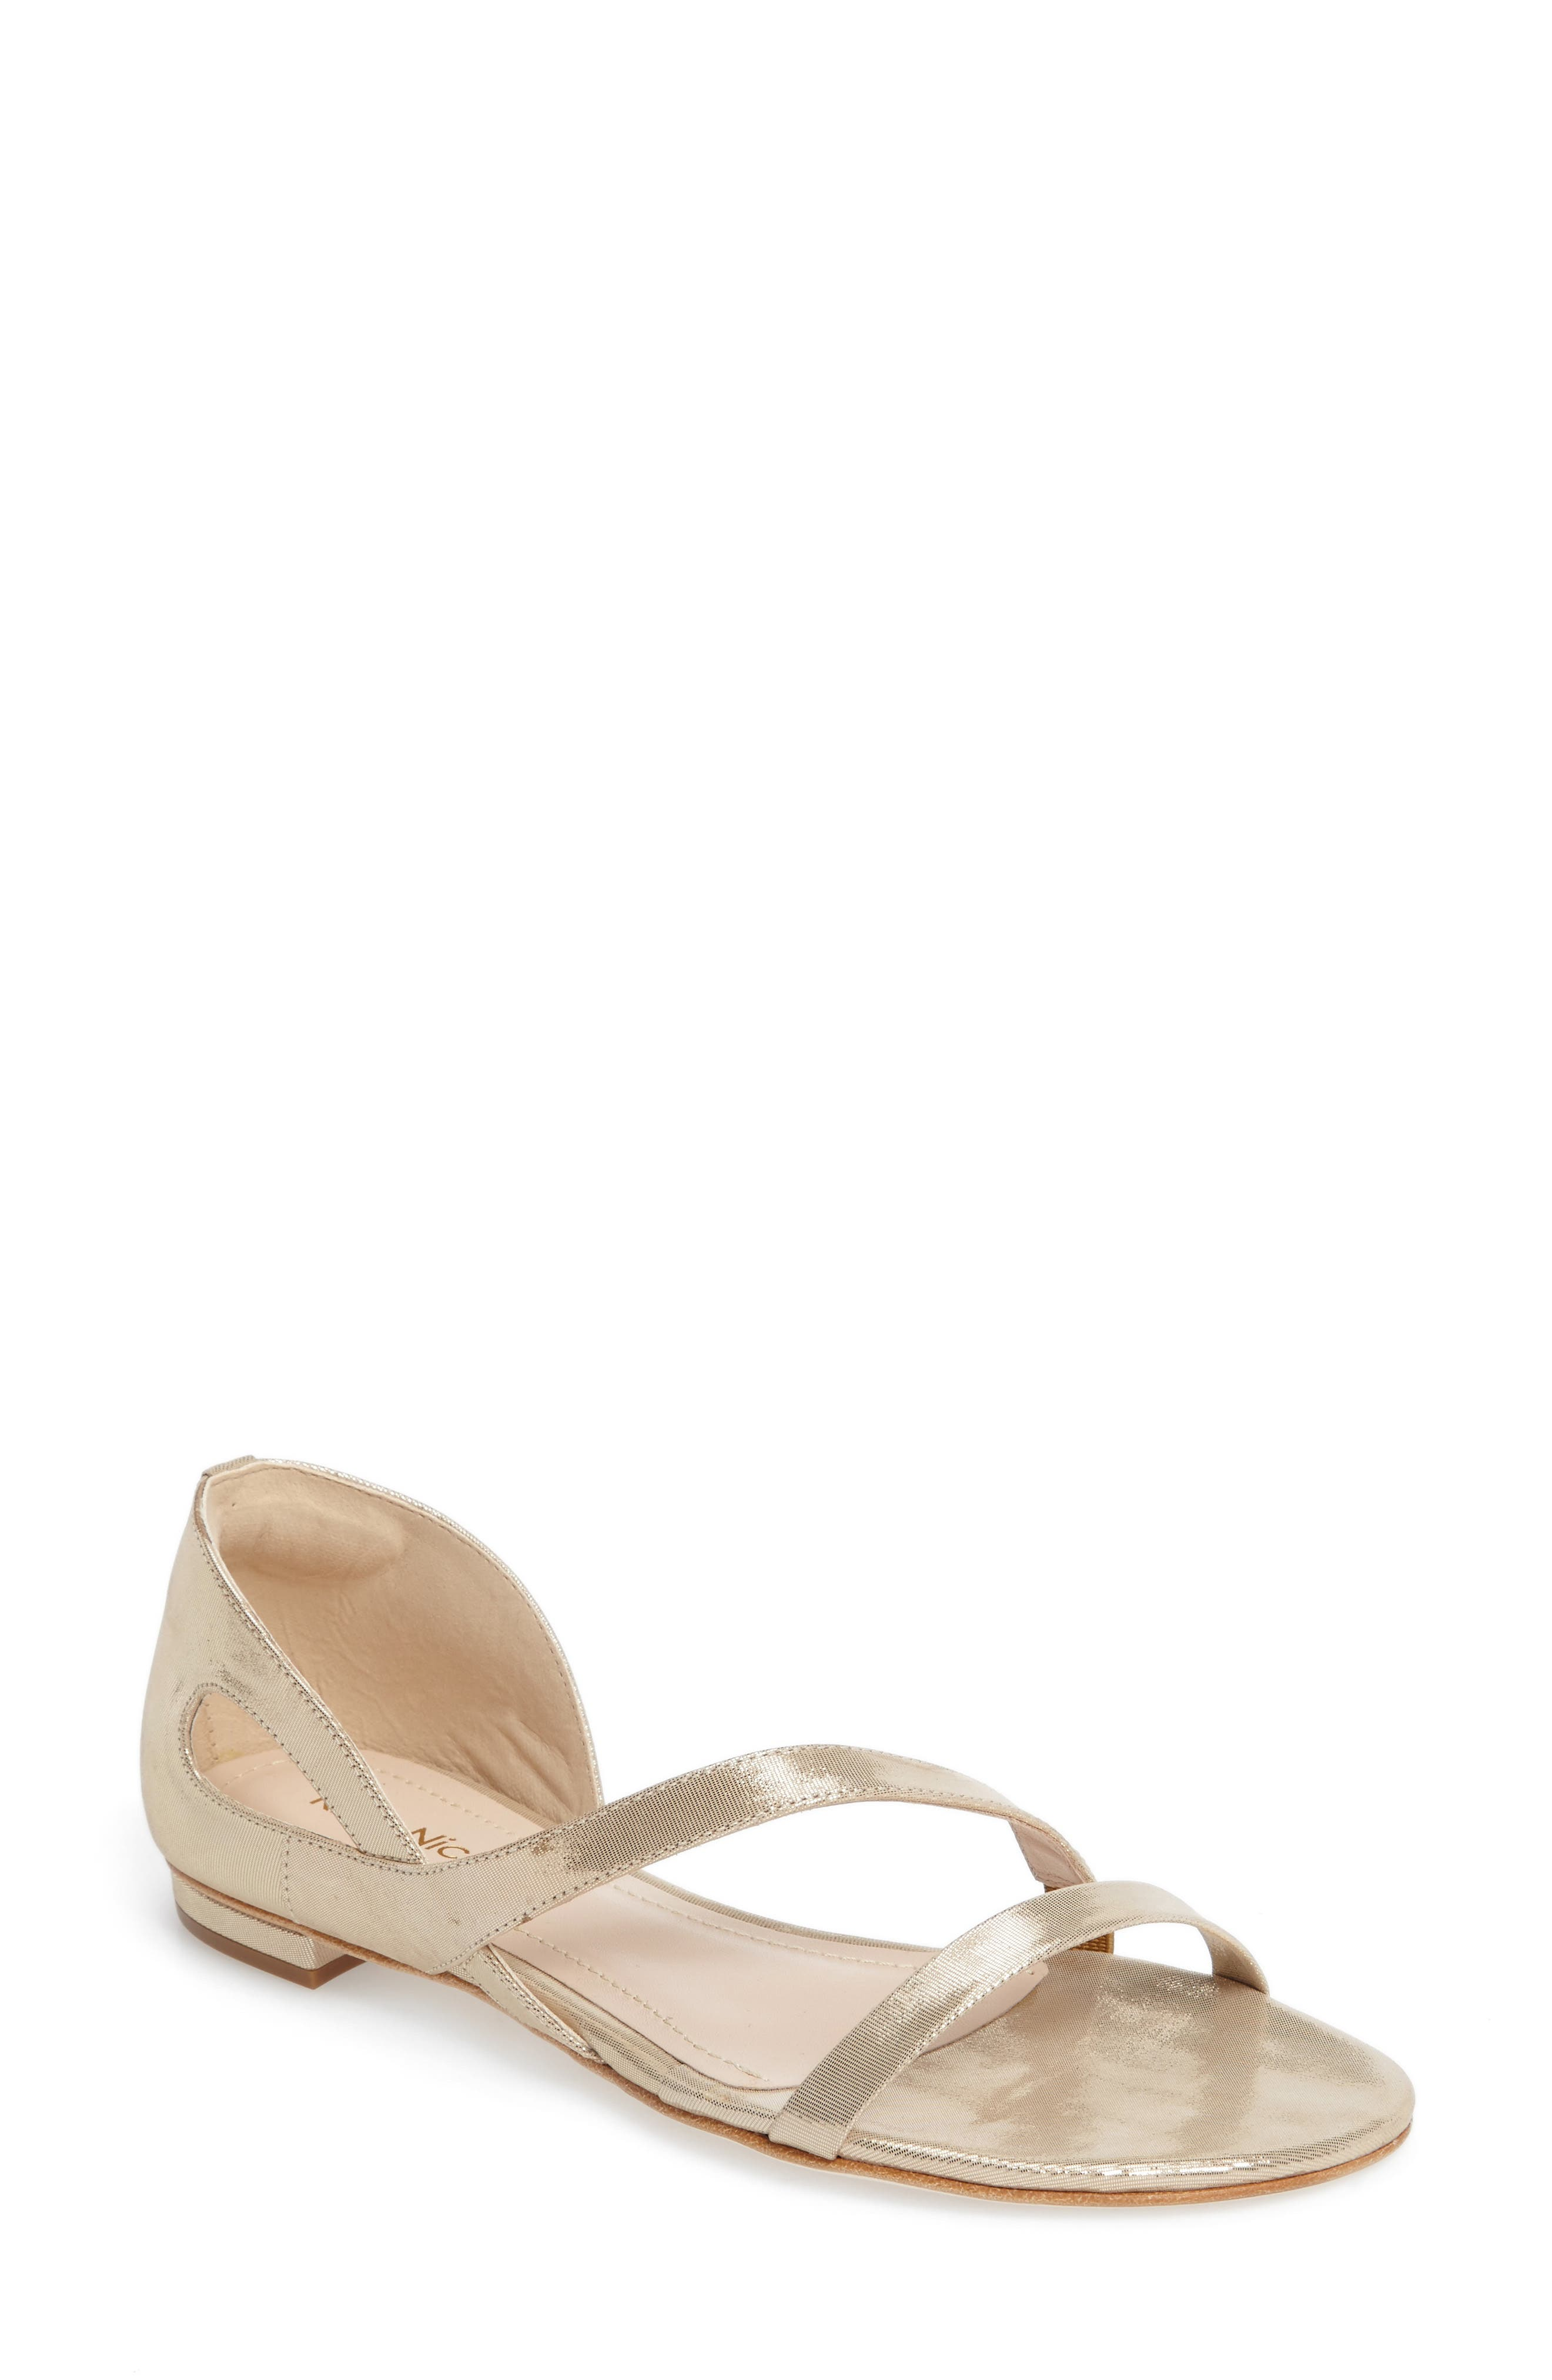 Jeanne Sandal,                         Main,                         color, Champagne Leather